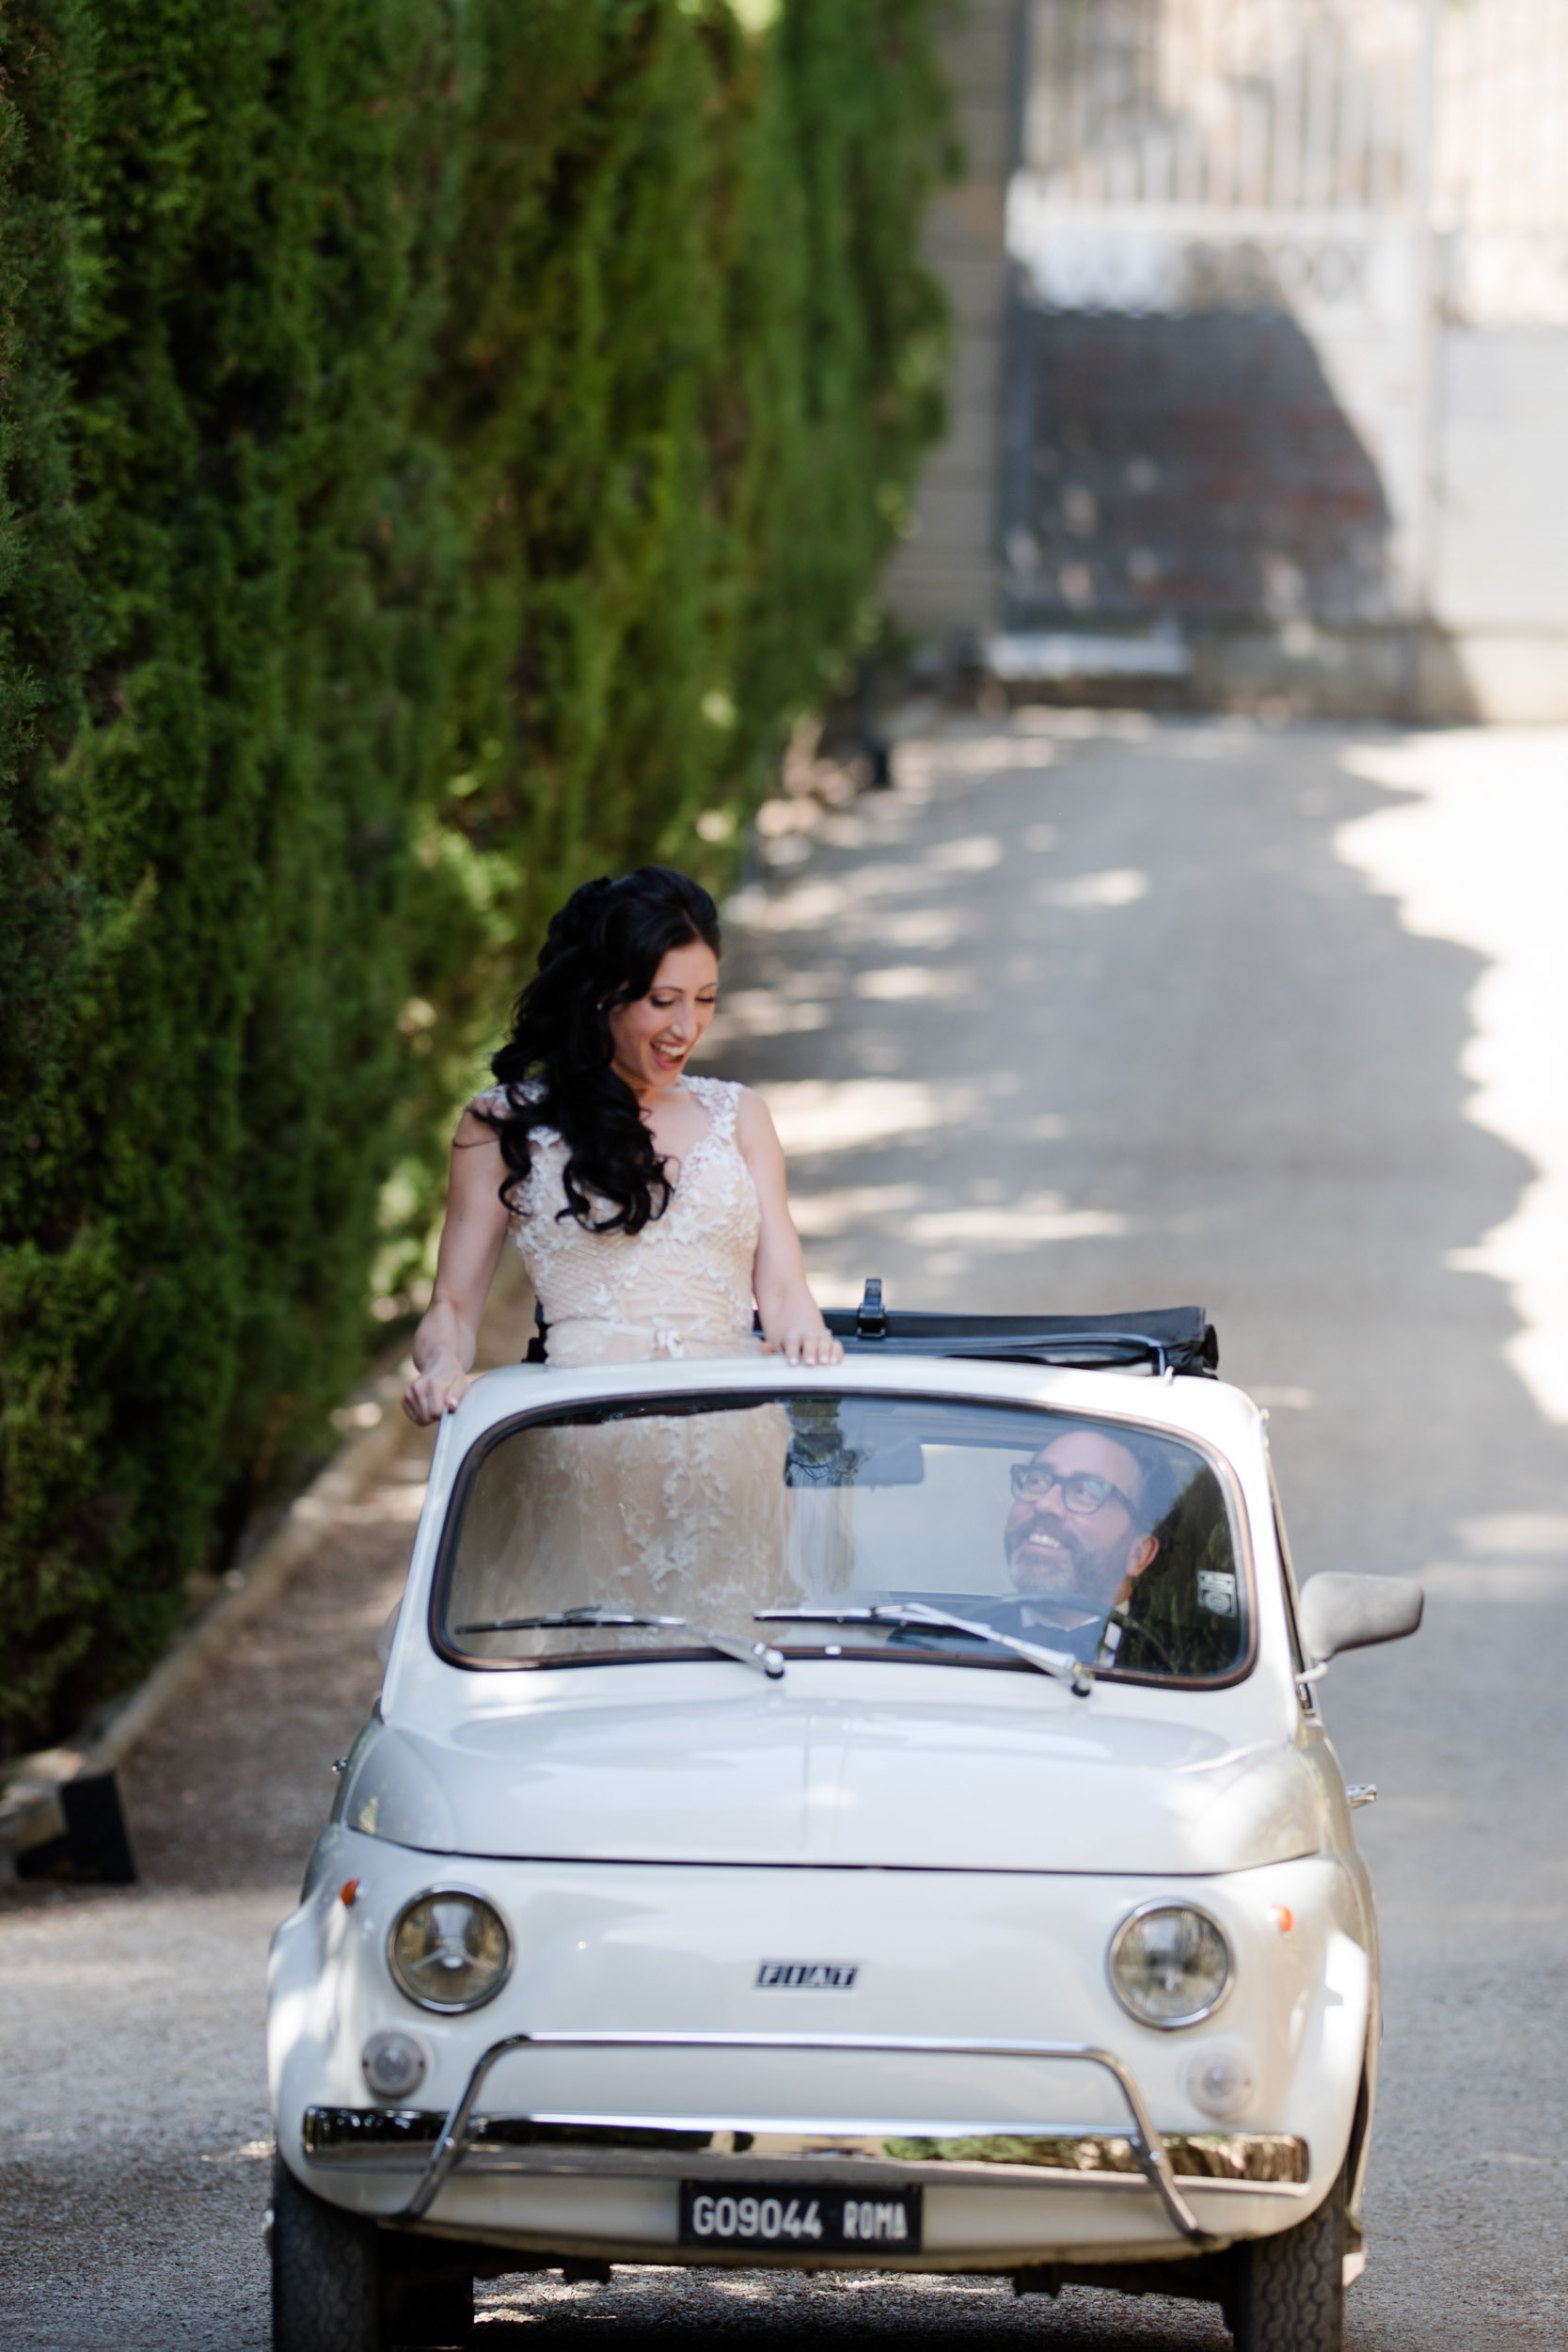 The couple rented a fiat cinquecento to drive during their wedding portraits in Italy.